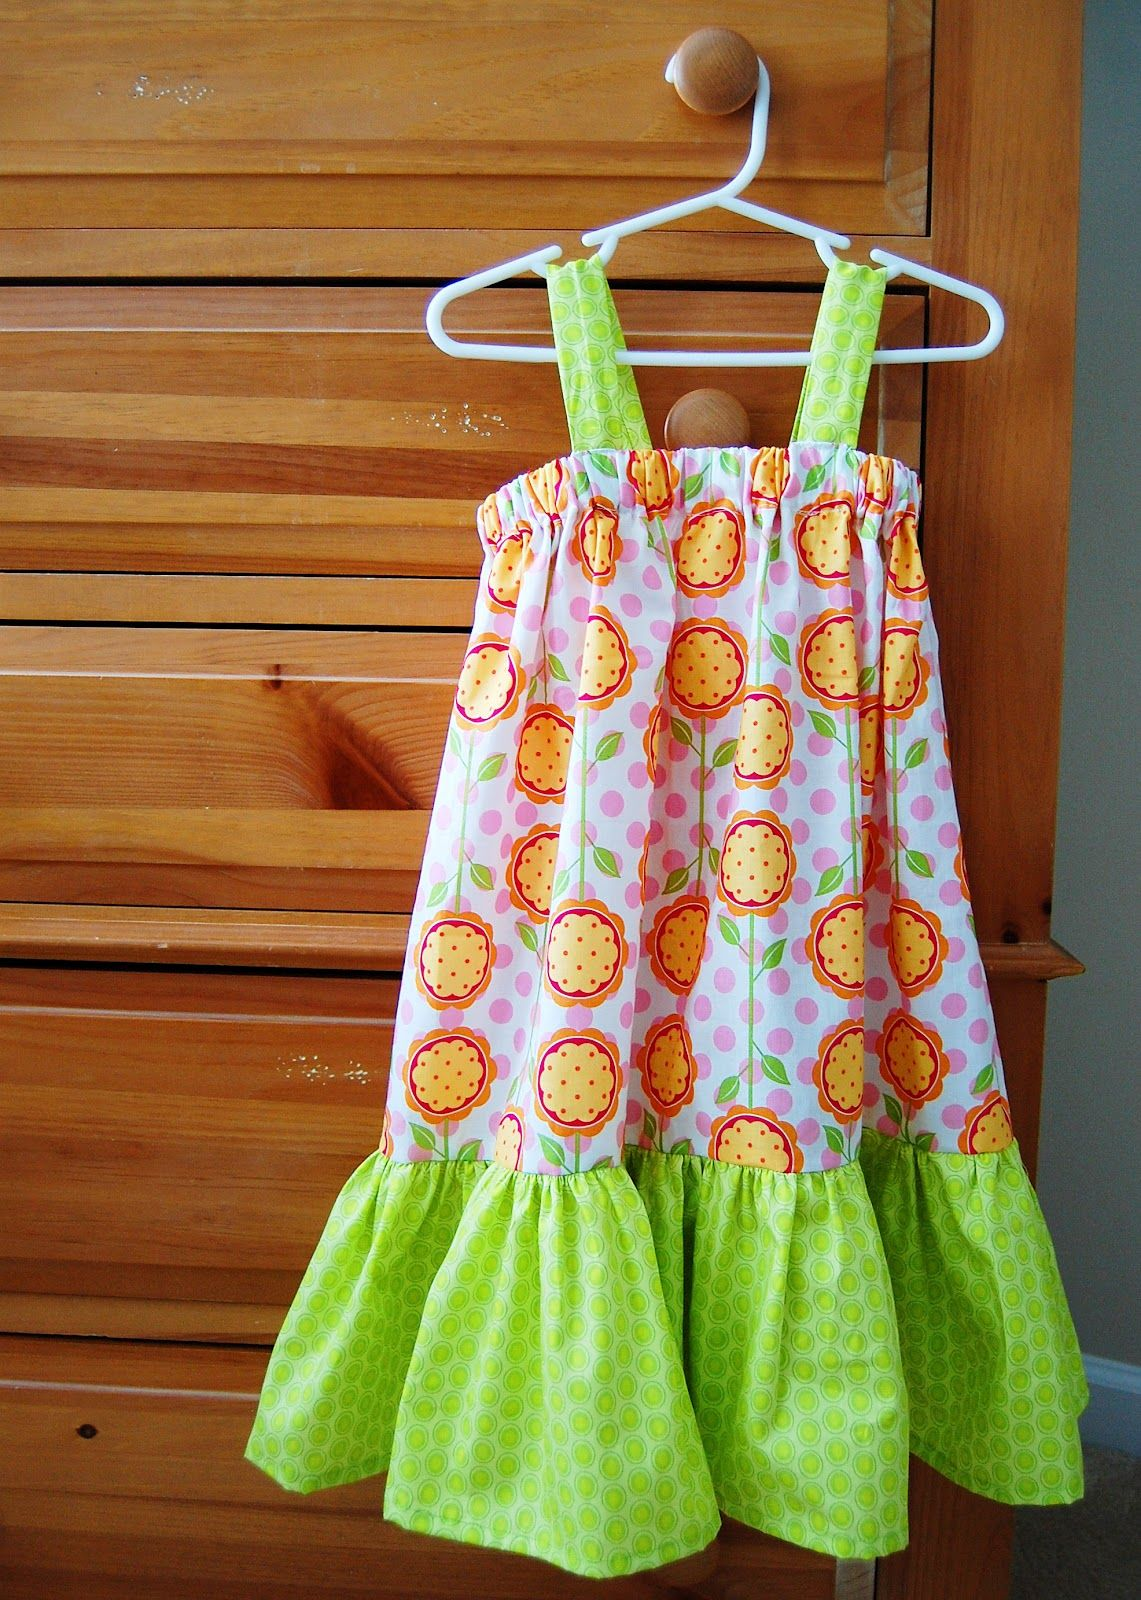 Southern Lovely: Simple Pillowcase Dress | A wardrobe for Betty ...